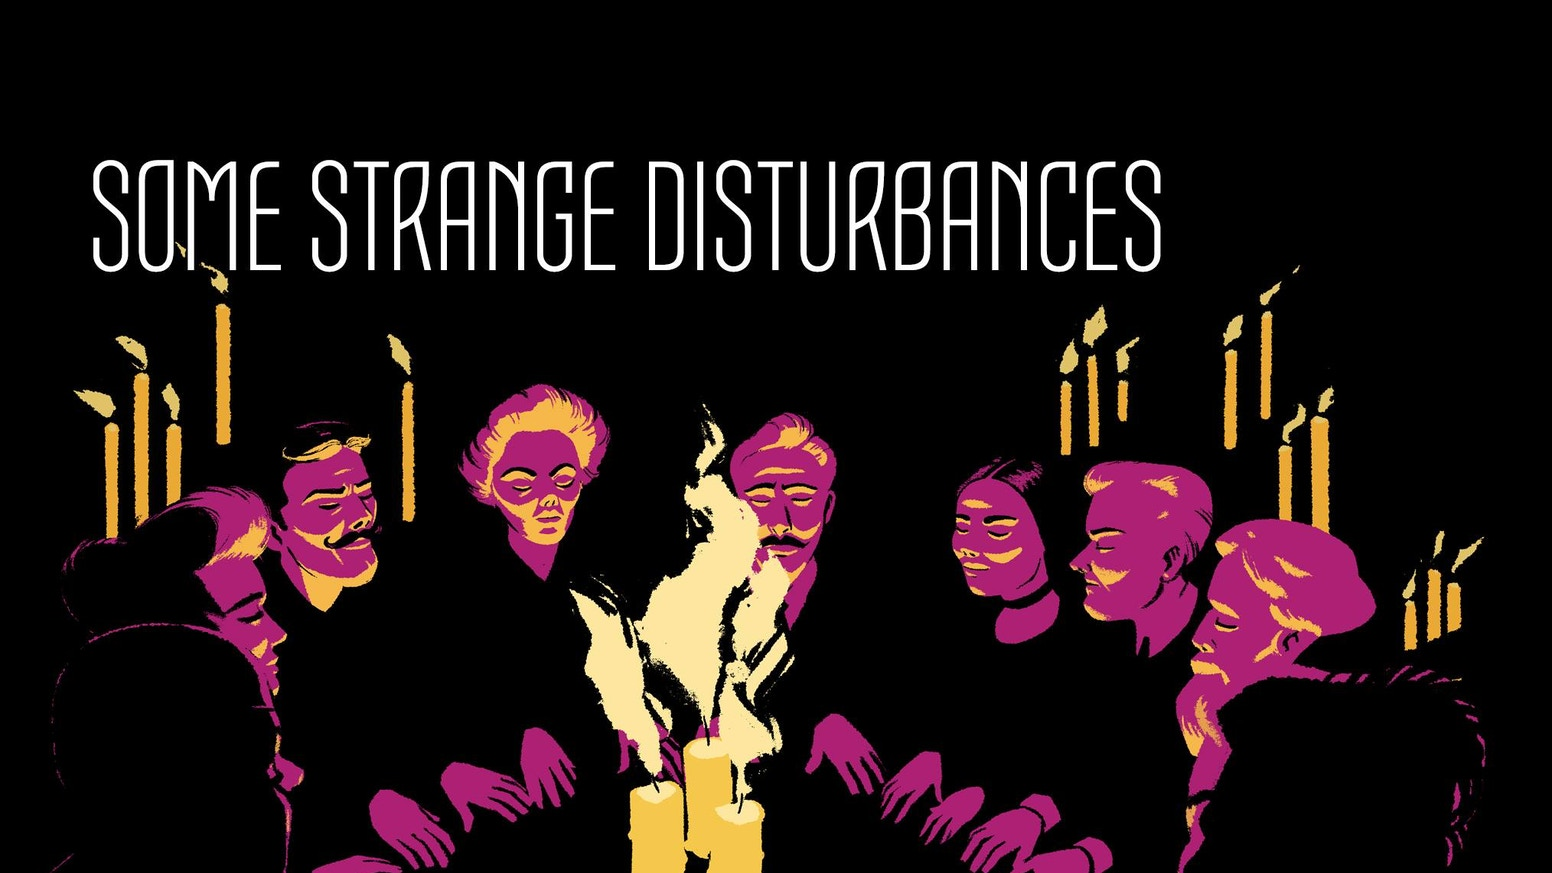 SOME STRANGE DISTURBANCES is a Victorian Horror Comic featuring a diverse trio of main characters (LGBTQ and POC).